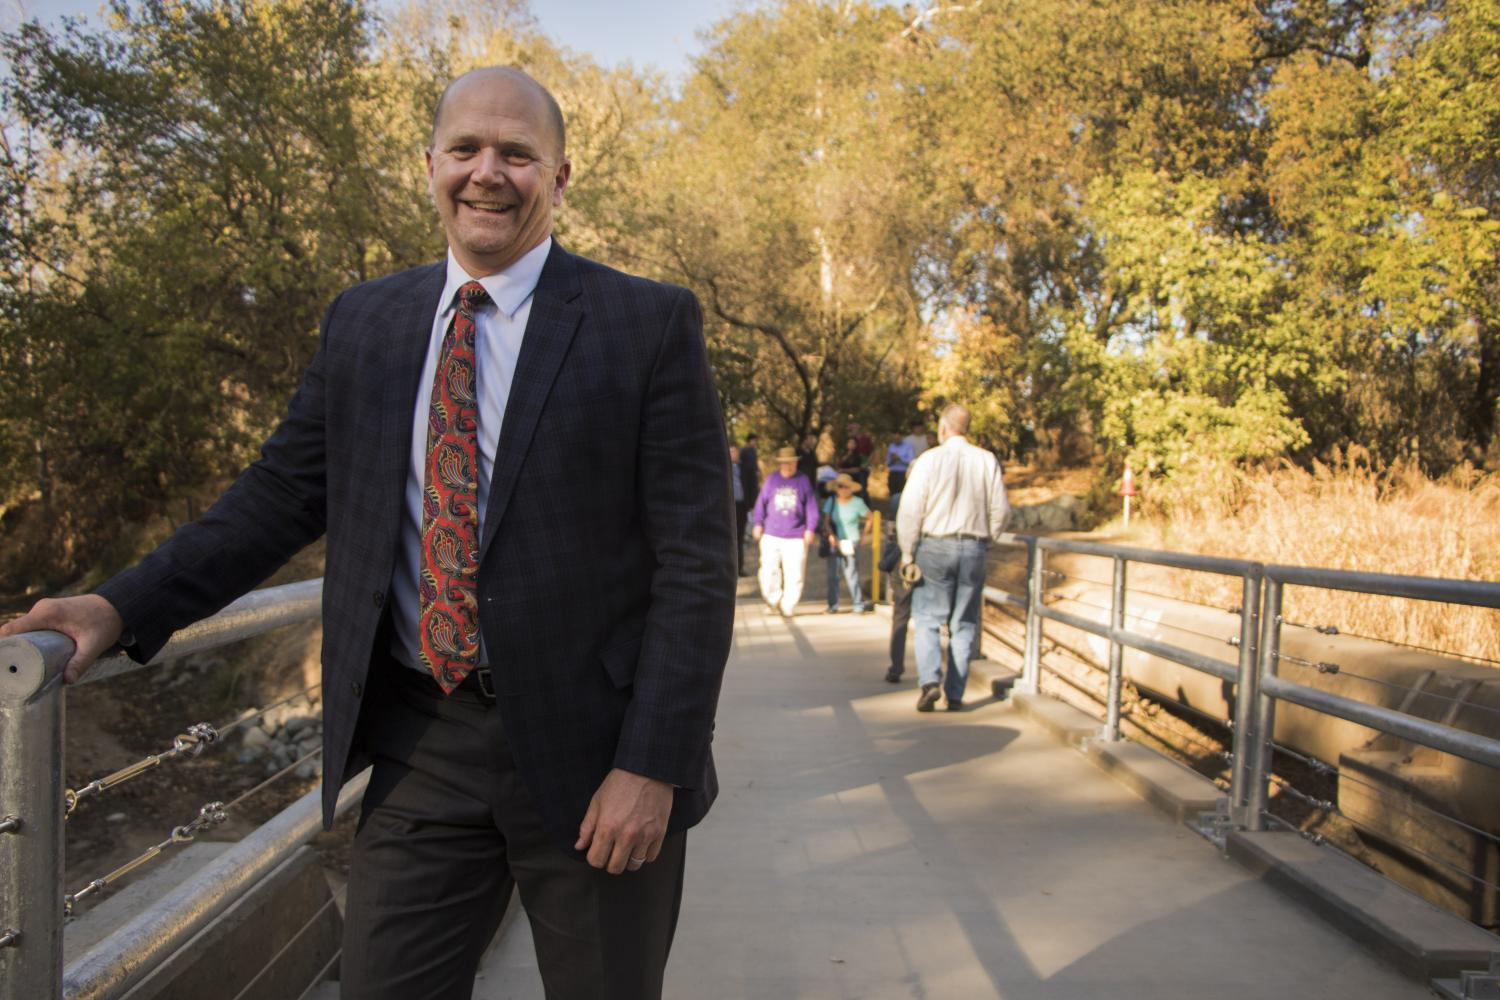 American River College president Thomas Greene will retire in June 2020, after almost six years in the position. (File Photo)